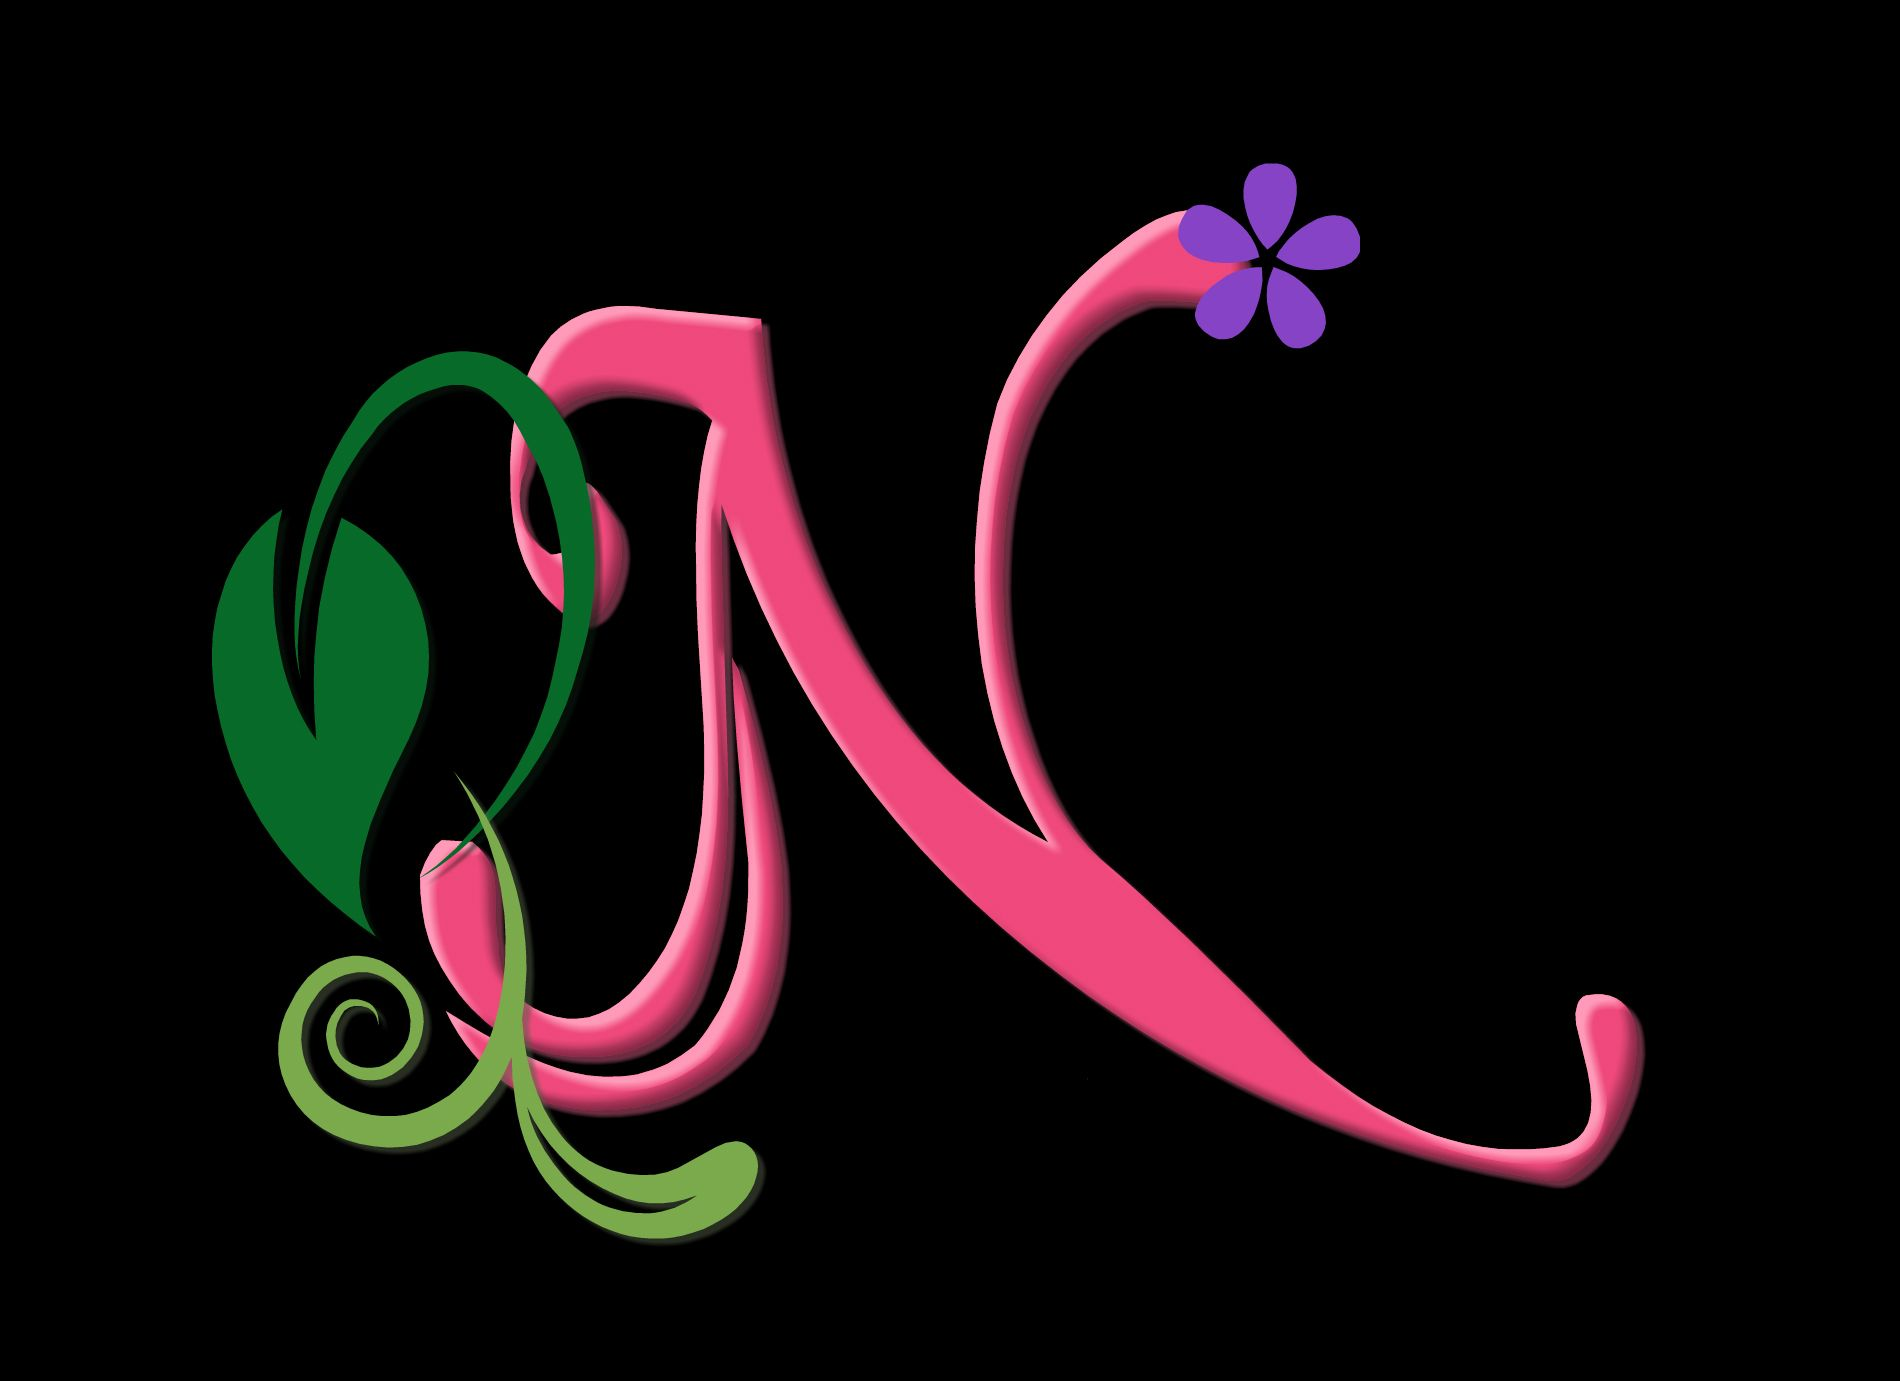 searching alphabet wallpapers ordered by top rated page of